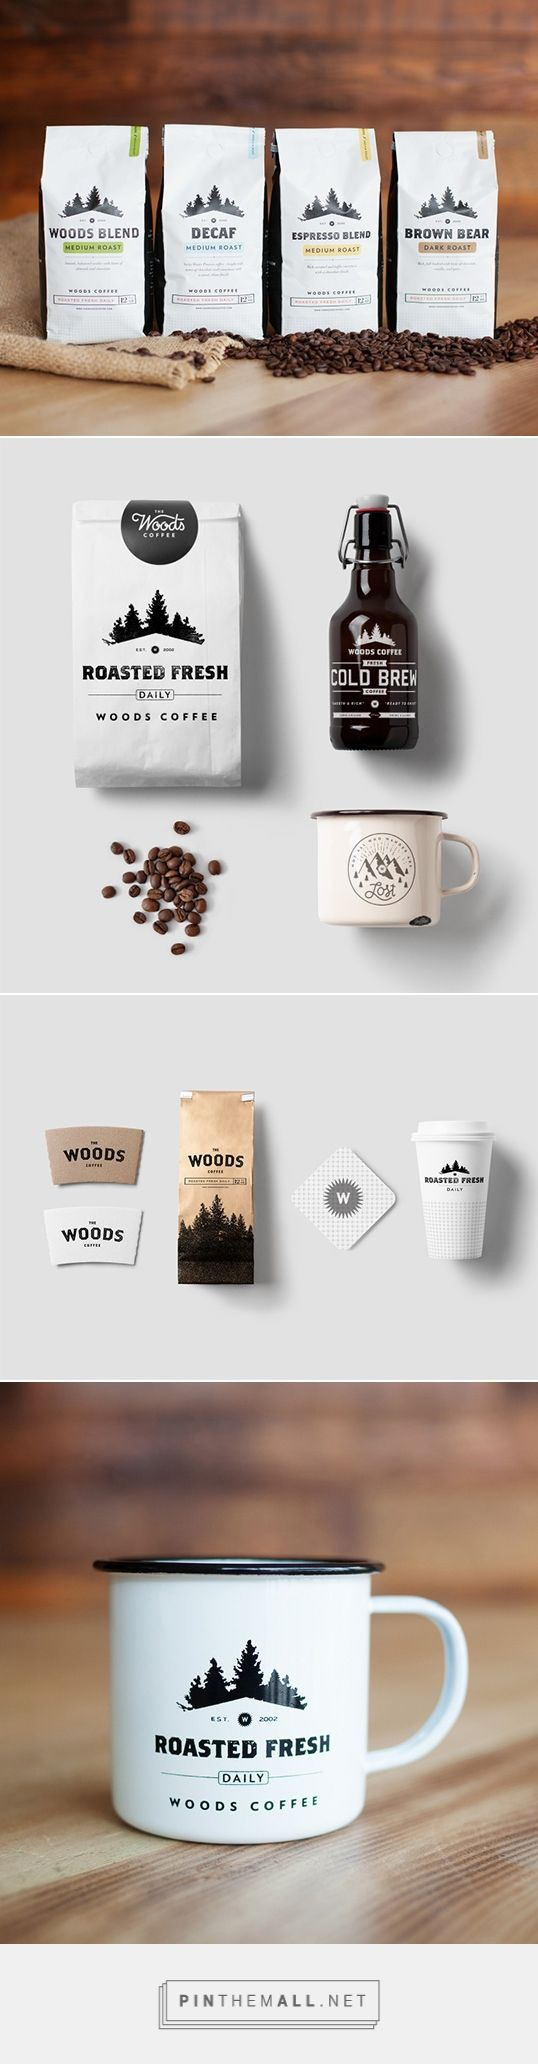 Woods Coffee | Lovely Package... - #coffeepackaging